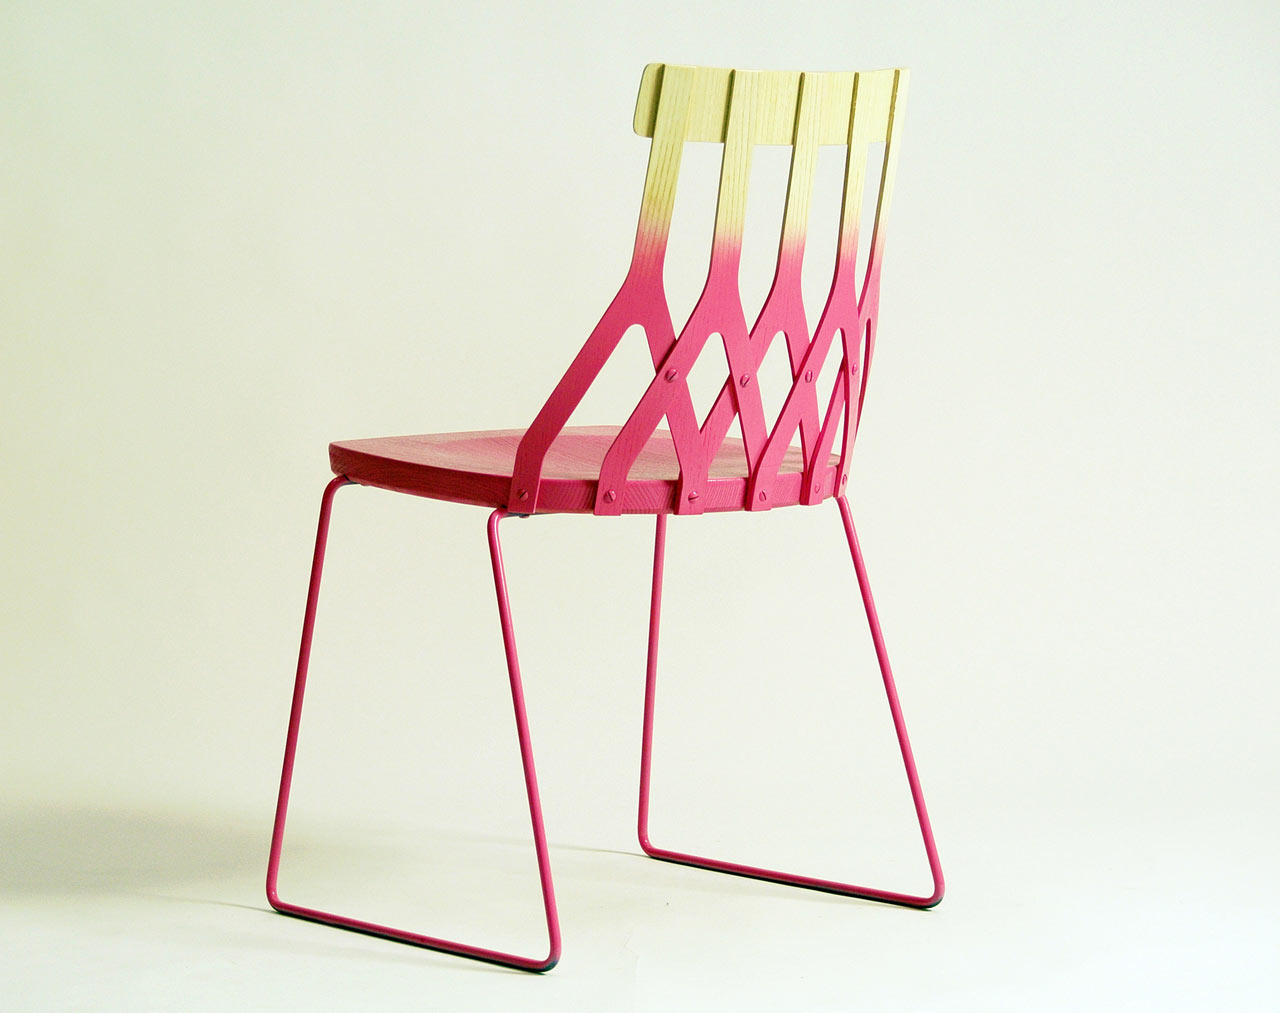 y5-chair-modern-sami-kallio-pink-back